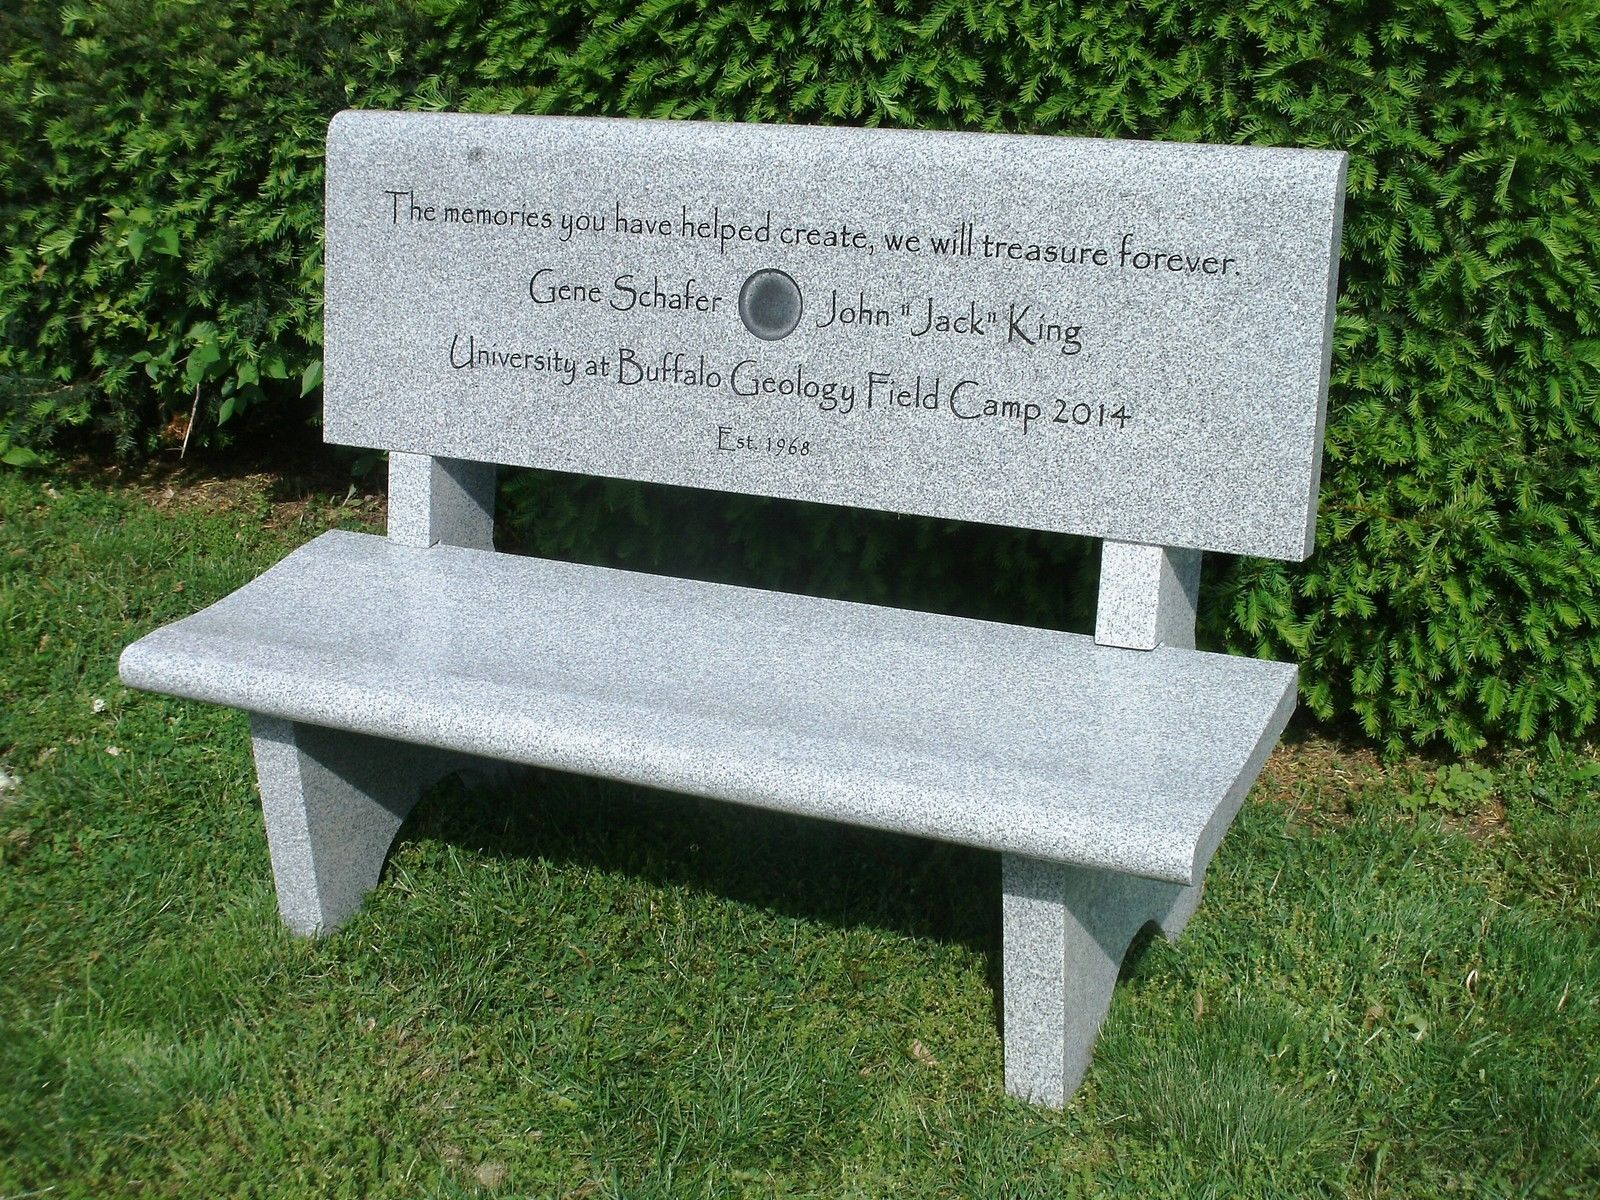 Granite Memorial Bench Memorial Benches Granite Memorial Grave Marker